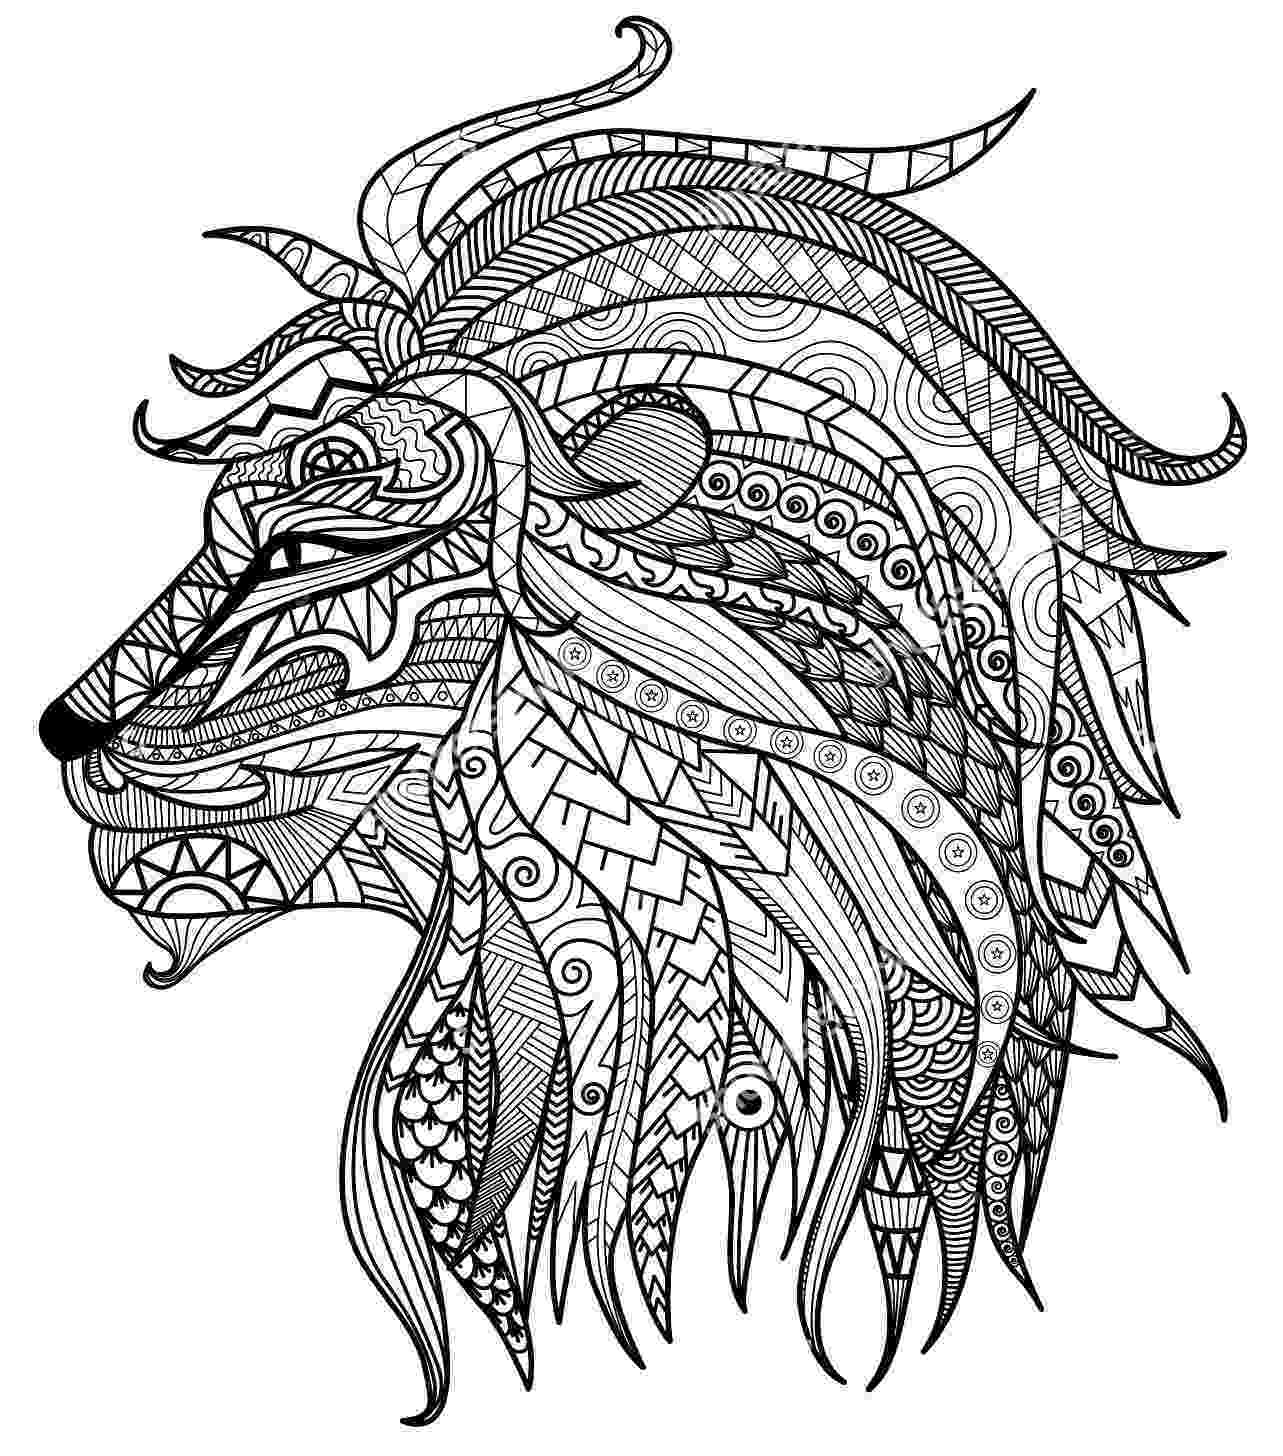 lion coloring book lion coloring pages to download and print for free book lion coloring